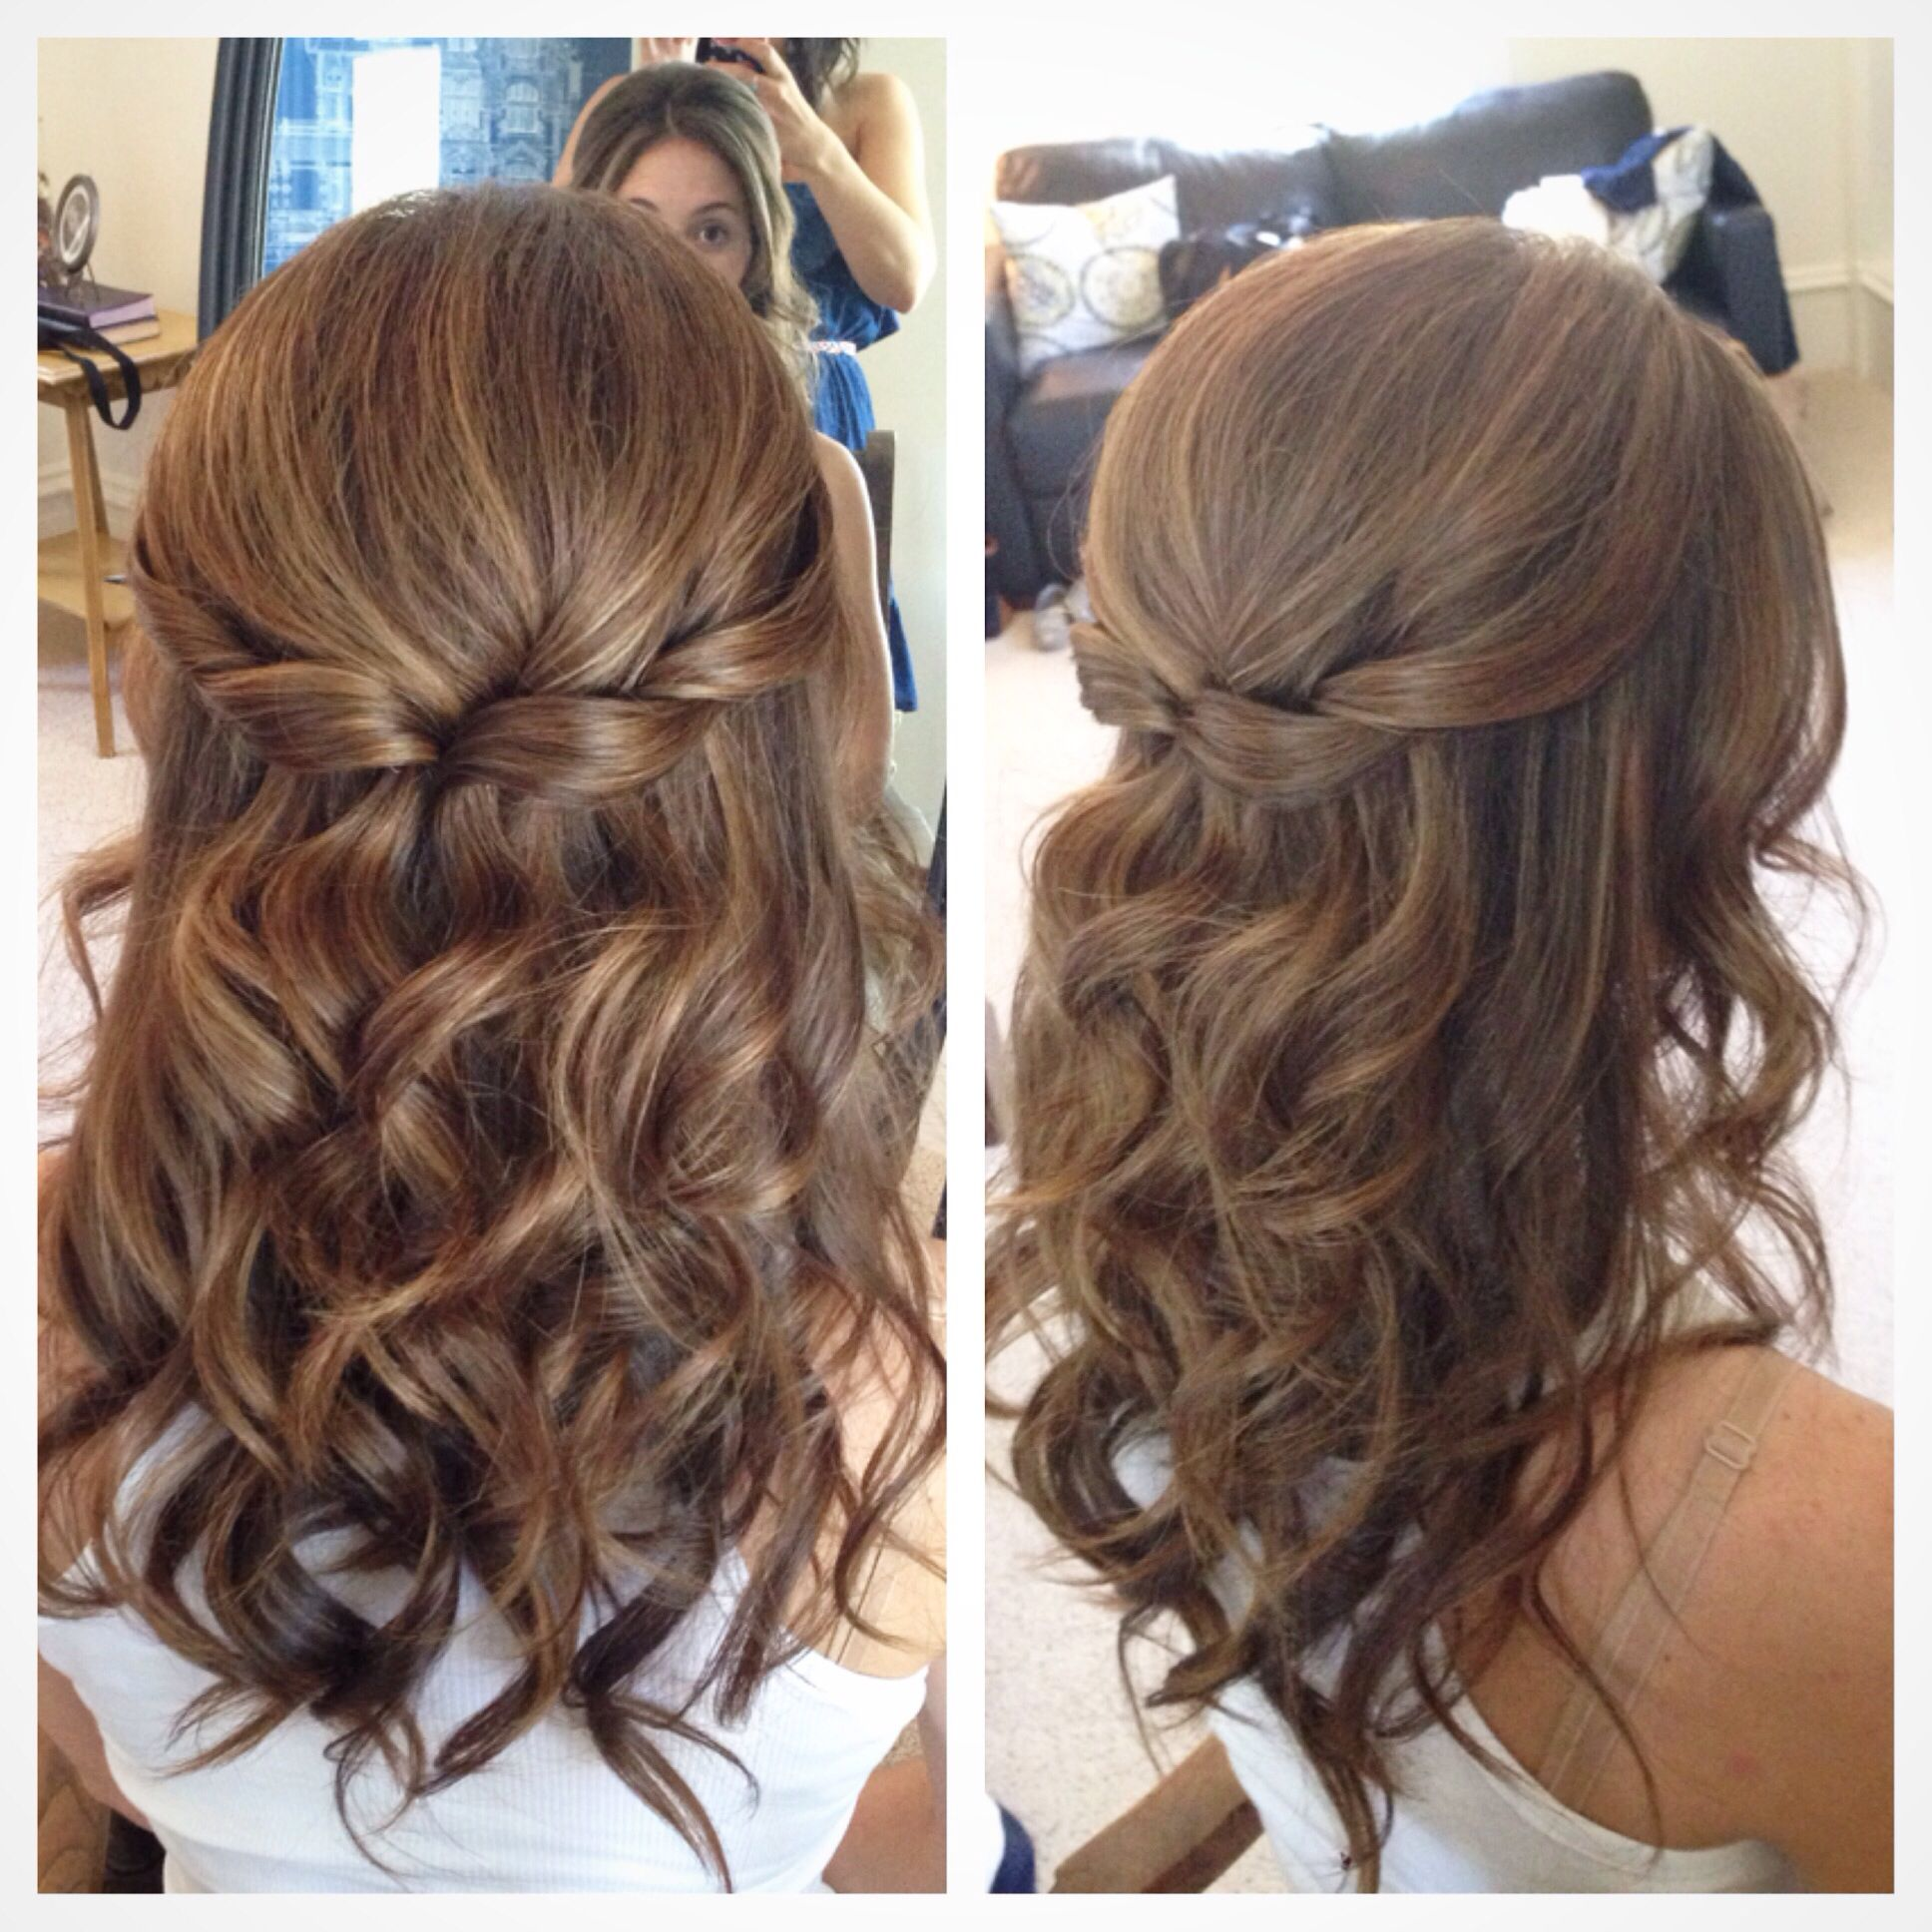 Wedding Hairstyles Down Curly: Half Up Half Down Hair, Wedding Hair, Pretty Hair But With